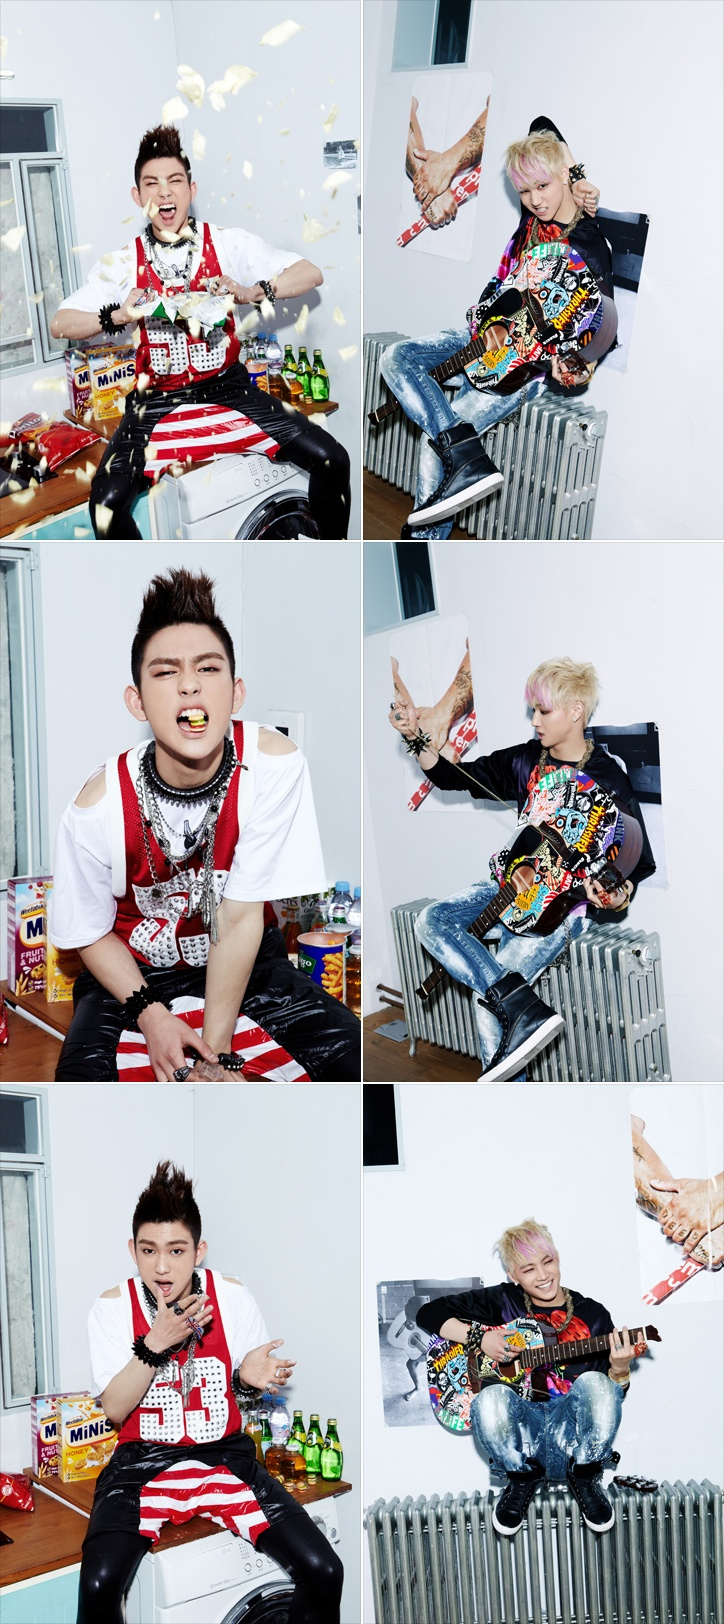 [IMAGE TEASER] Teaser photos of JB & Jr. ~ The first official debut photos of JJ Project! Officially from JYP Entertainment >> www.jype.com/ #JJProject #Bounce #JB #Jr .